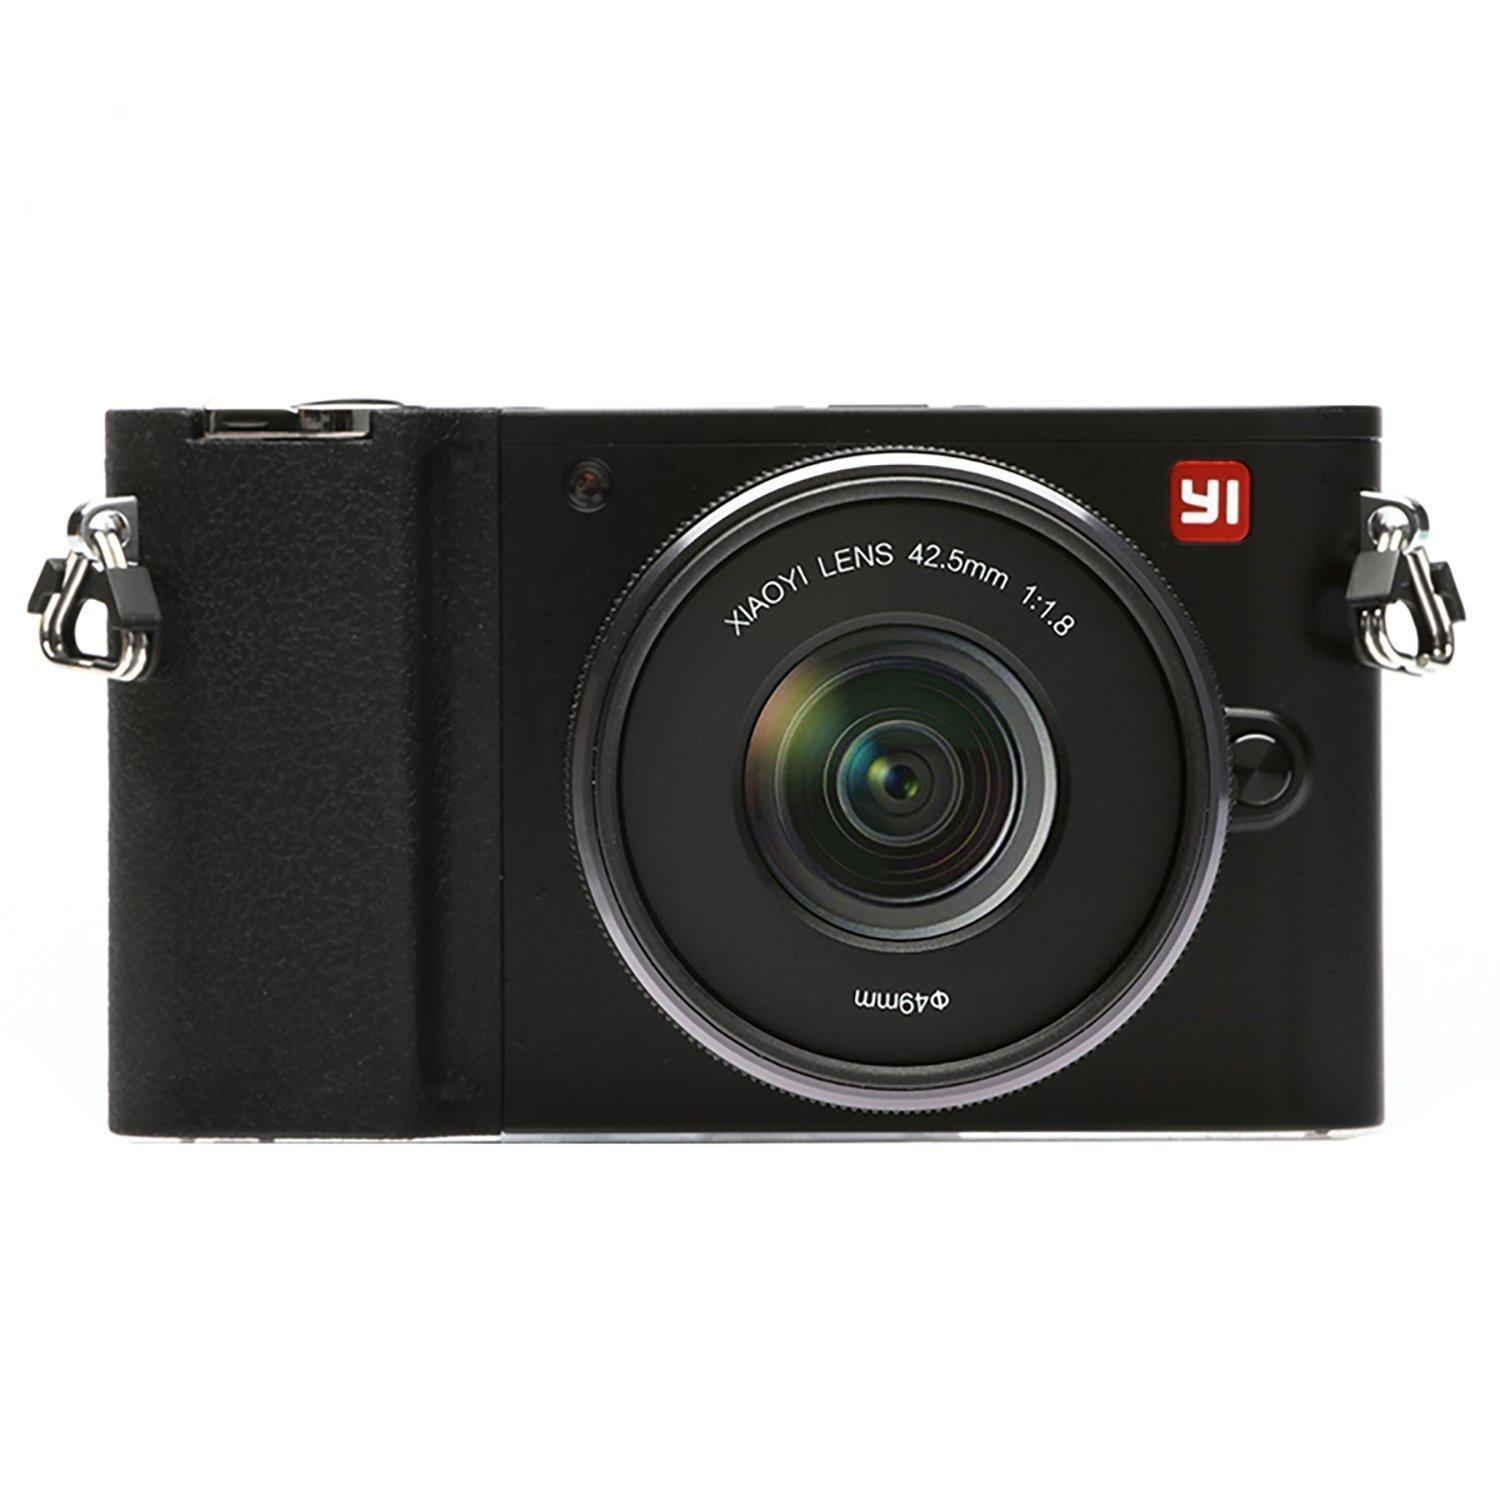 YI M1 Mirrorless Digital Camera with 12-40mm F3.5-5.6 Lens / 42.5mm F1.8 Lens (Storm Black)